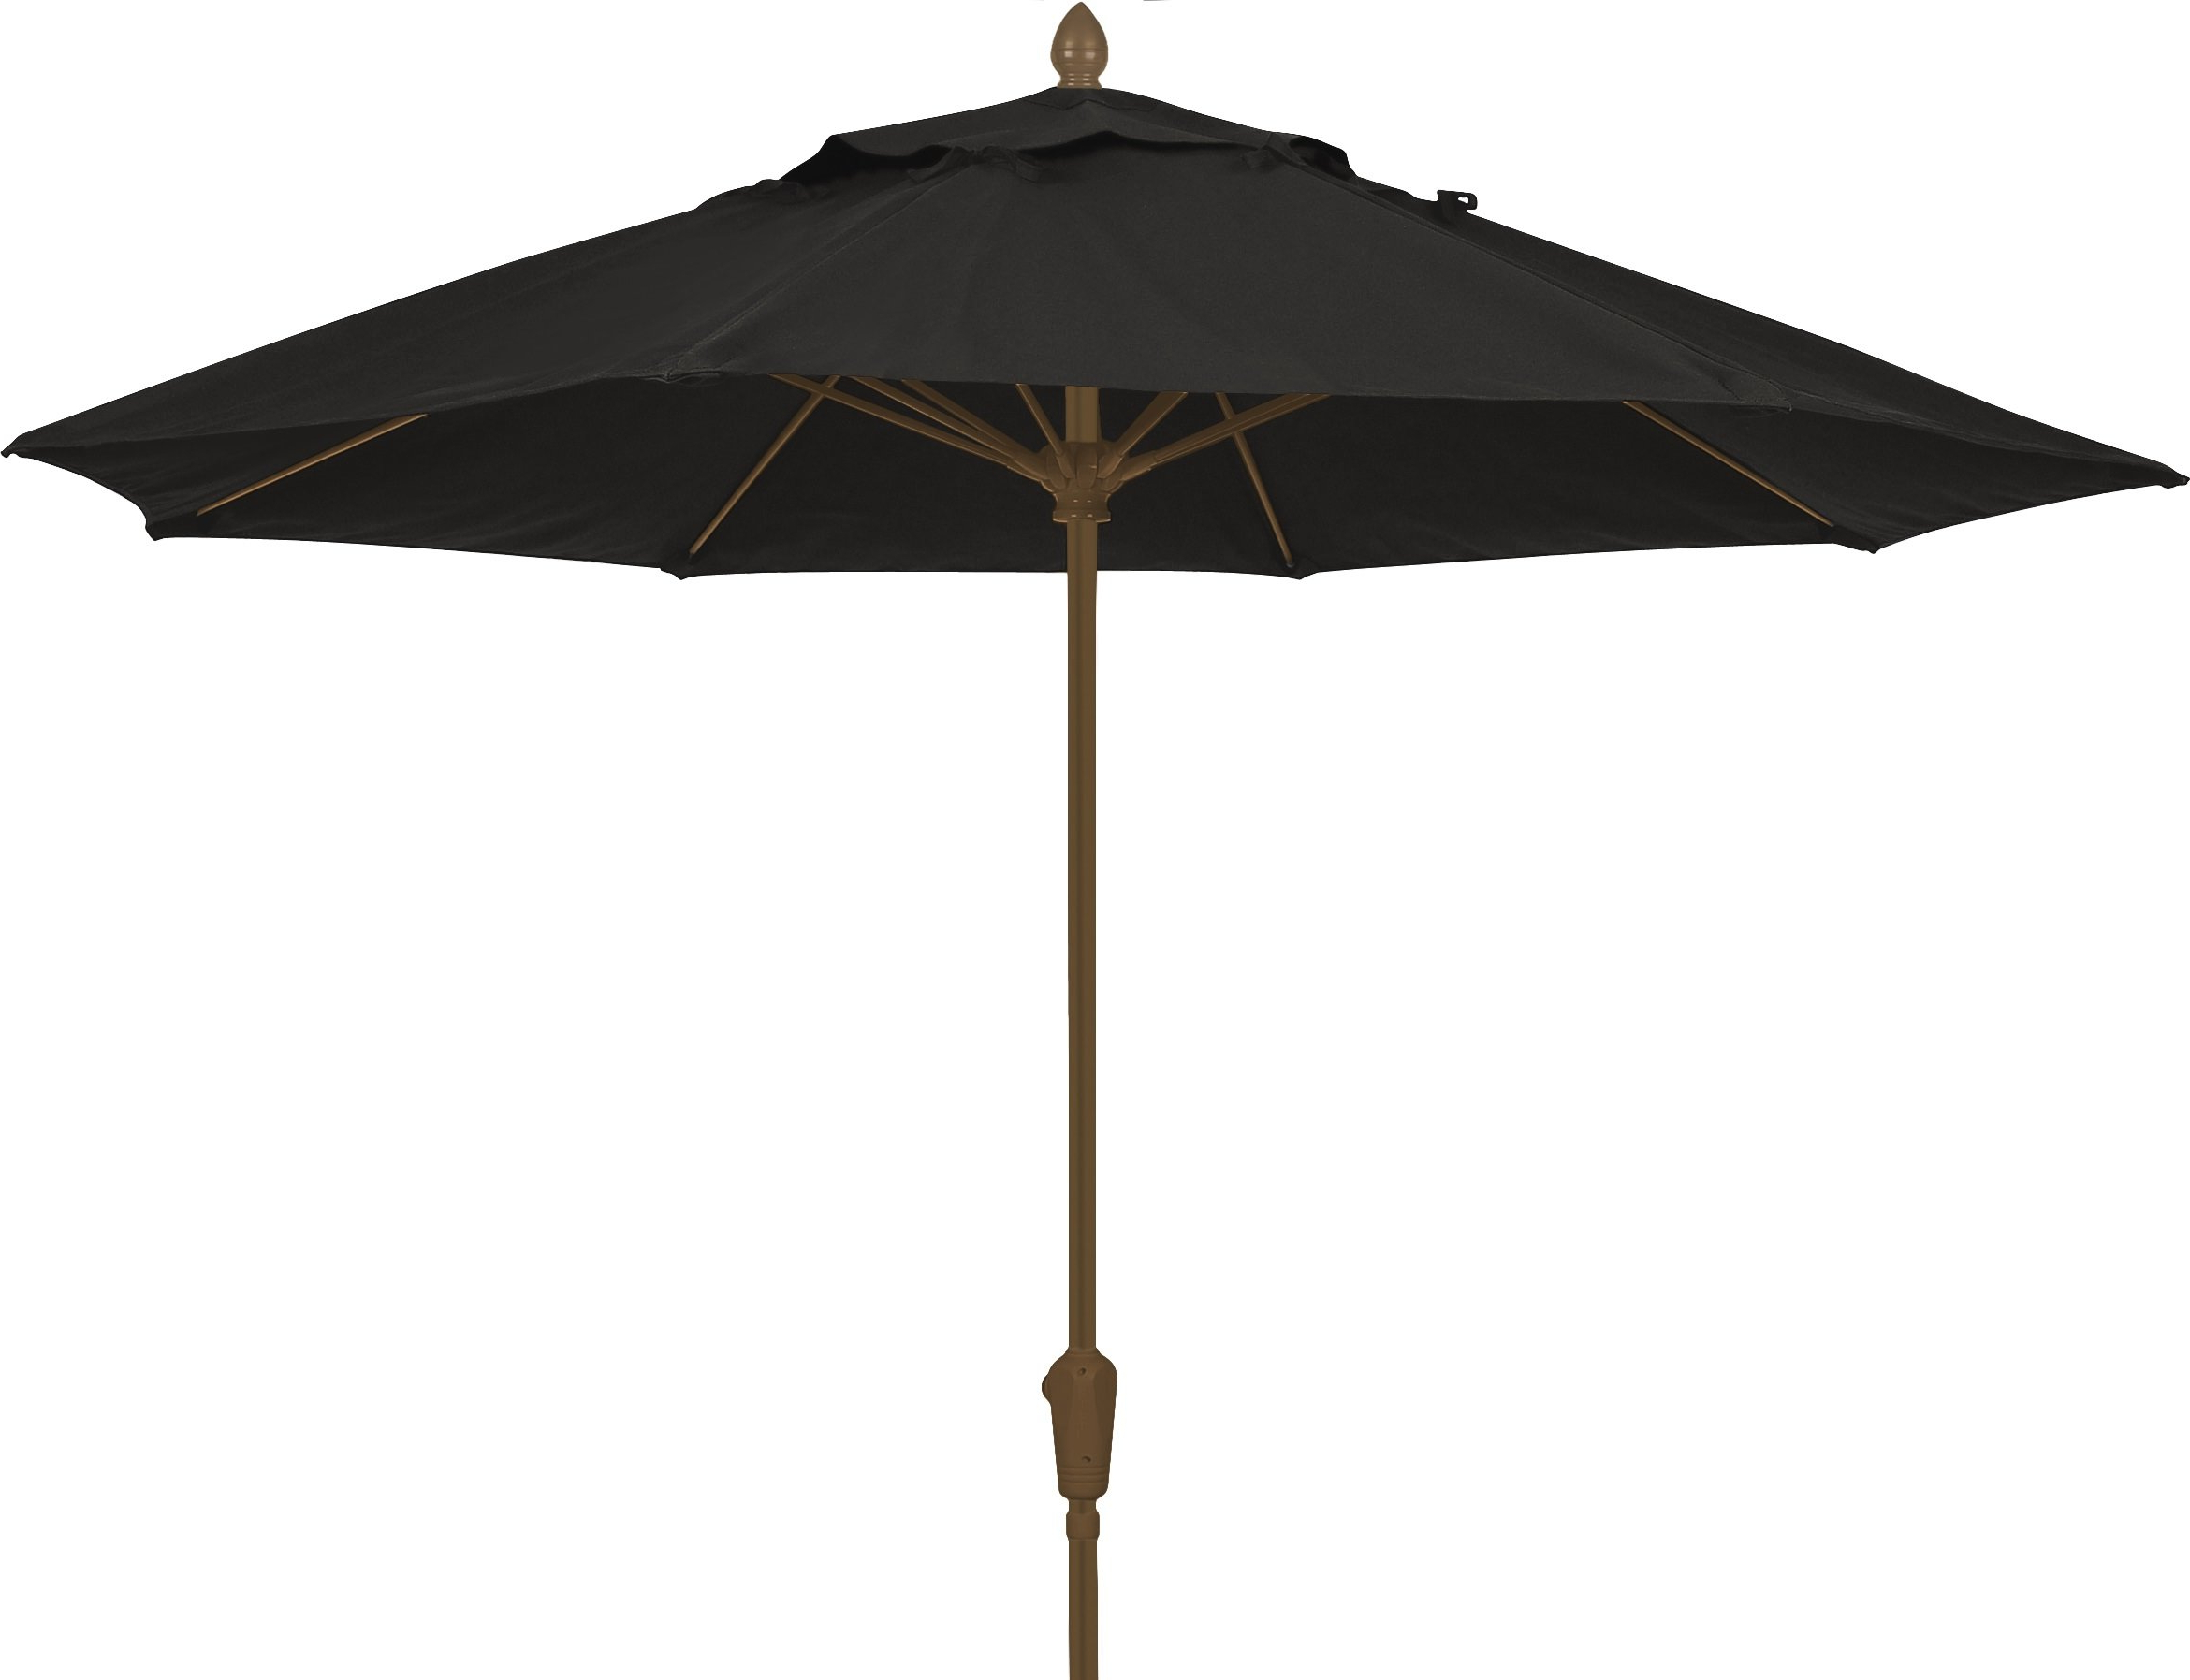 Most Up To Date Wiebe Market Sunbrella Umbrellas Inside Prestige 9' Market Sunbrella Umbrella (View 8 of 20)